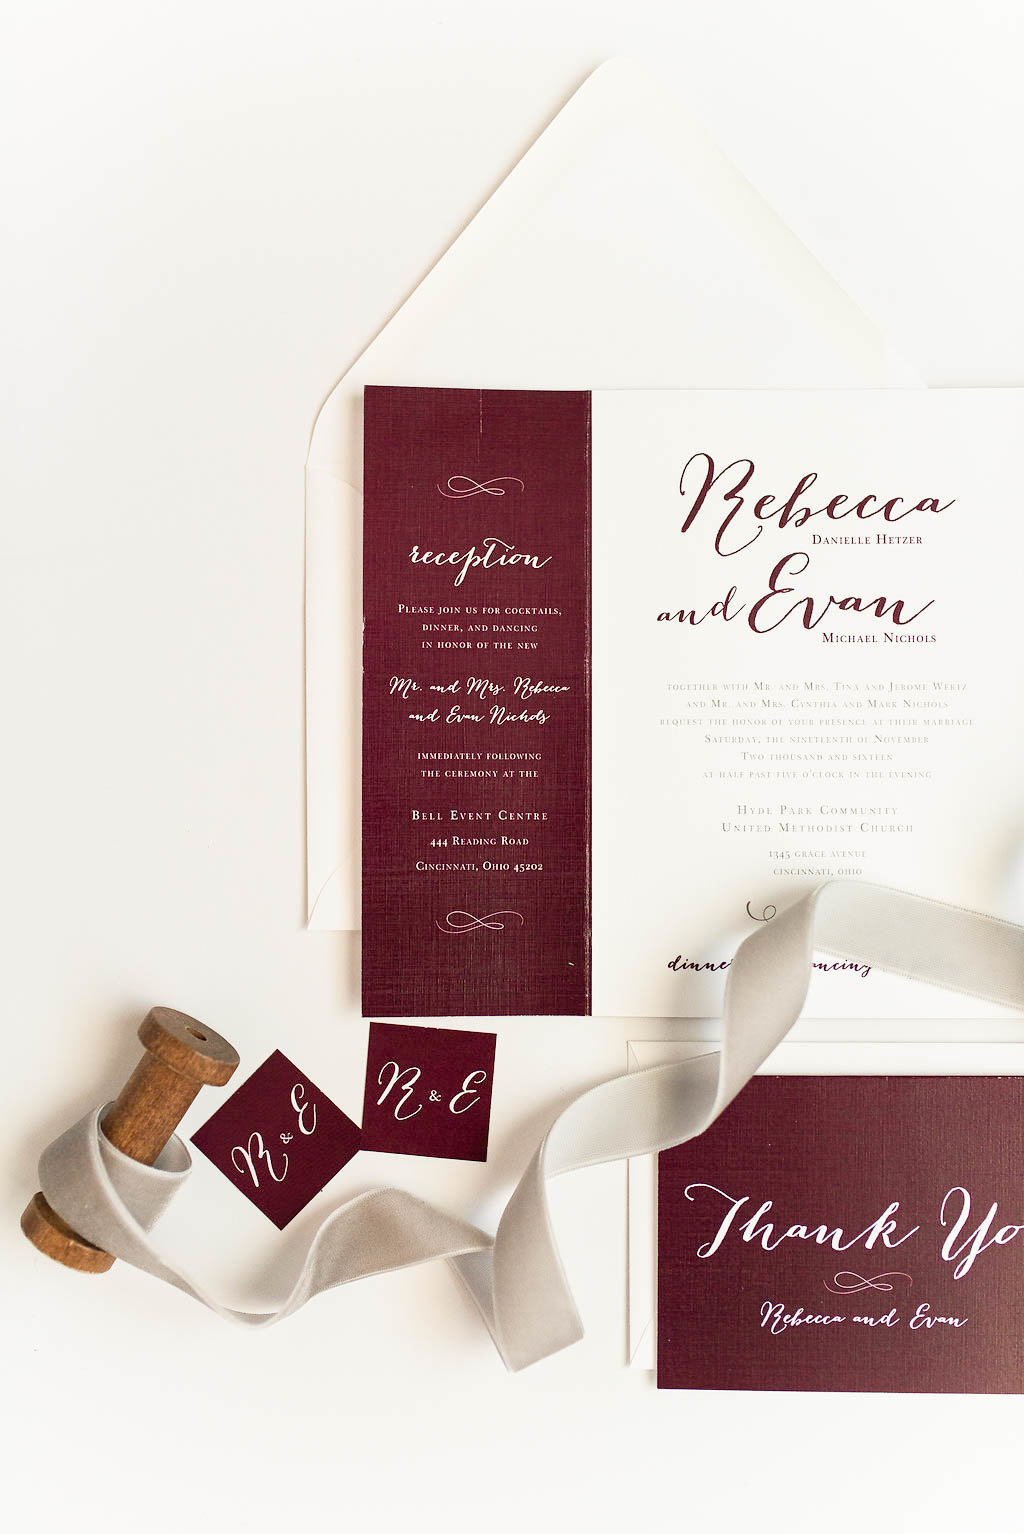 Melissa Arey - Hello Invite Design Studio - Photo -0862